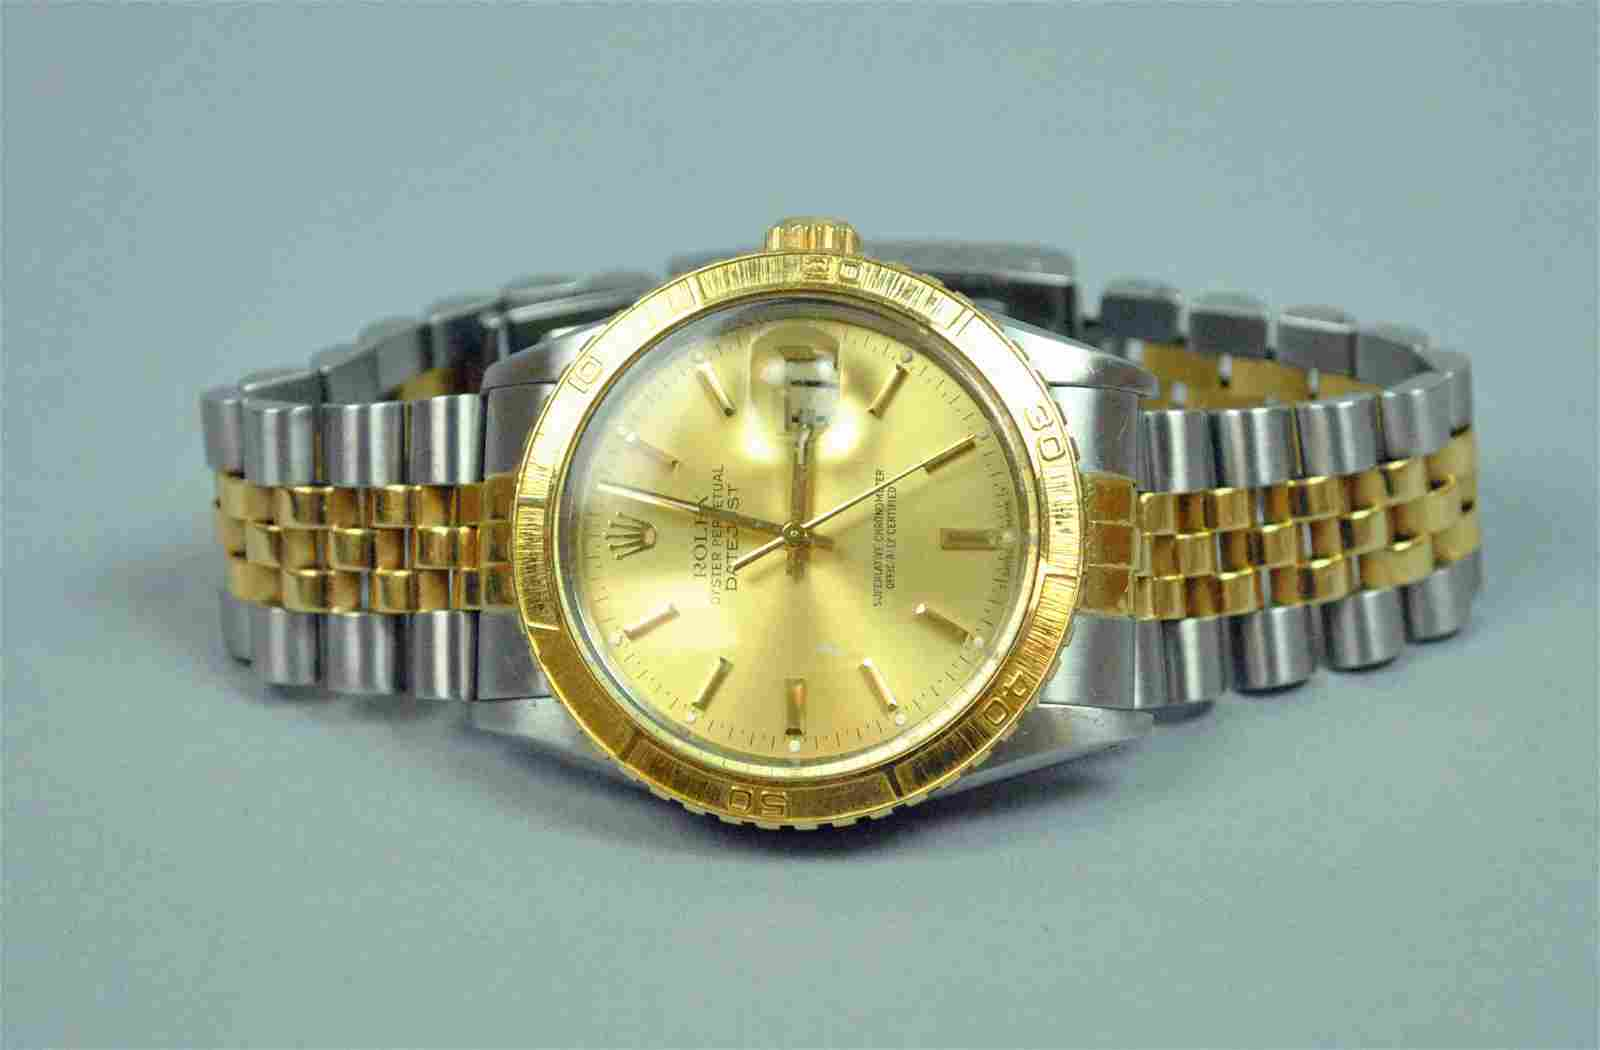 ROLEX 18K/SS OYSTER PERPETUAL DATEJUST WATCH